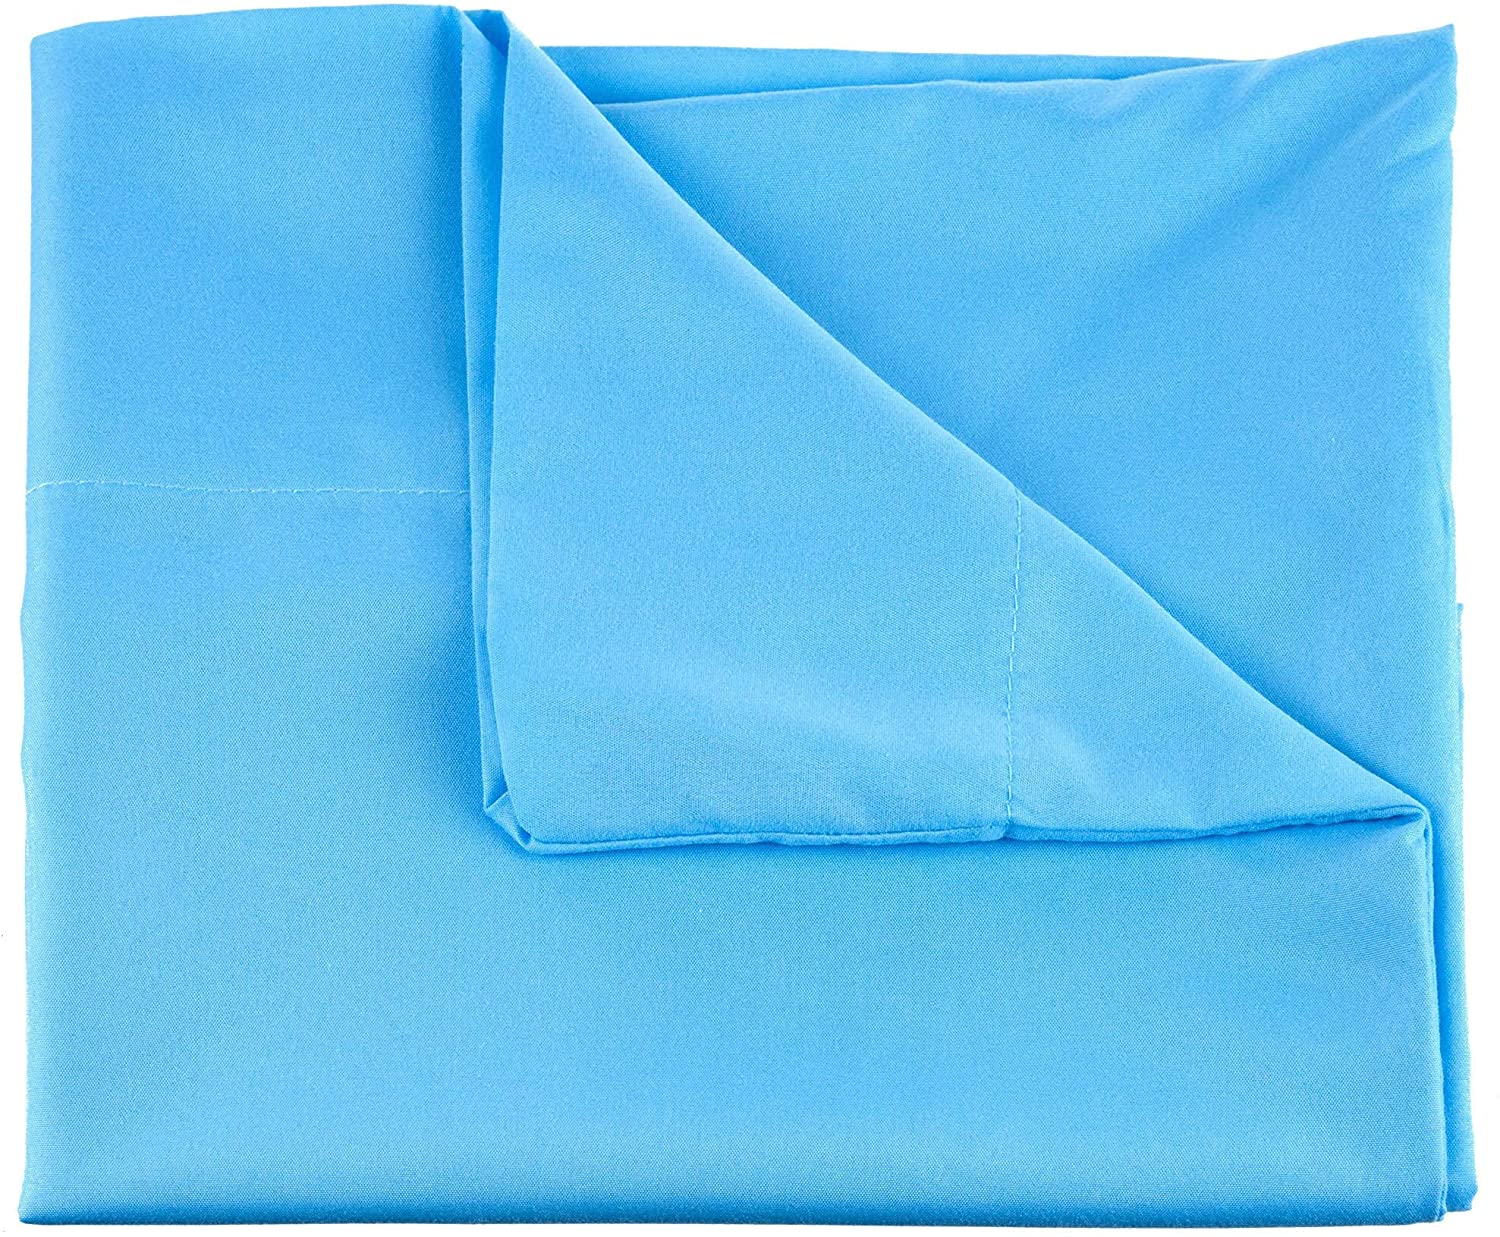 Home Series 1200 Thread Count Sheet Set Twin XL Light Blue Solid Color Casual Victorian Cotton Blend Fully Elasticized Fitted Stain Resistant